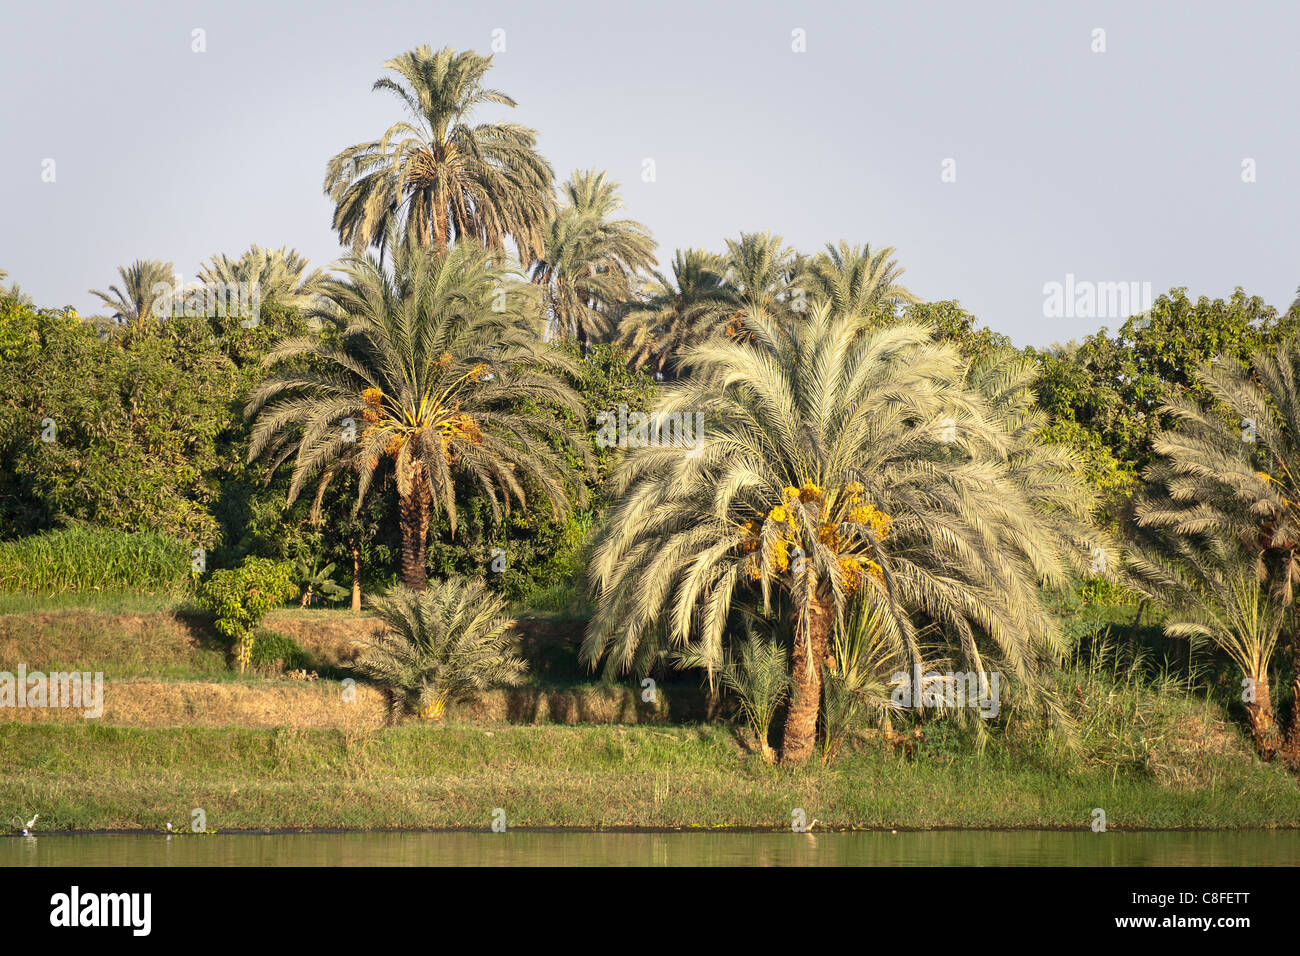 A section of Nile river bank with overhanging palms and trees on a grassy bank and narrow strip of water, Egypt - Stock Image